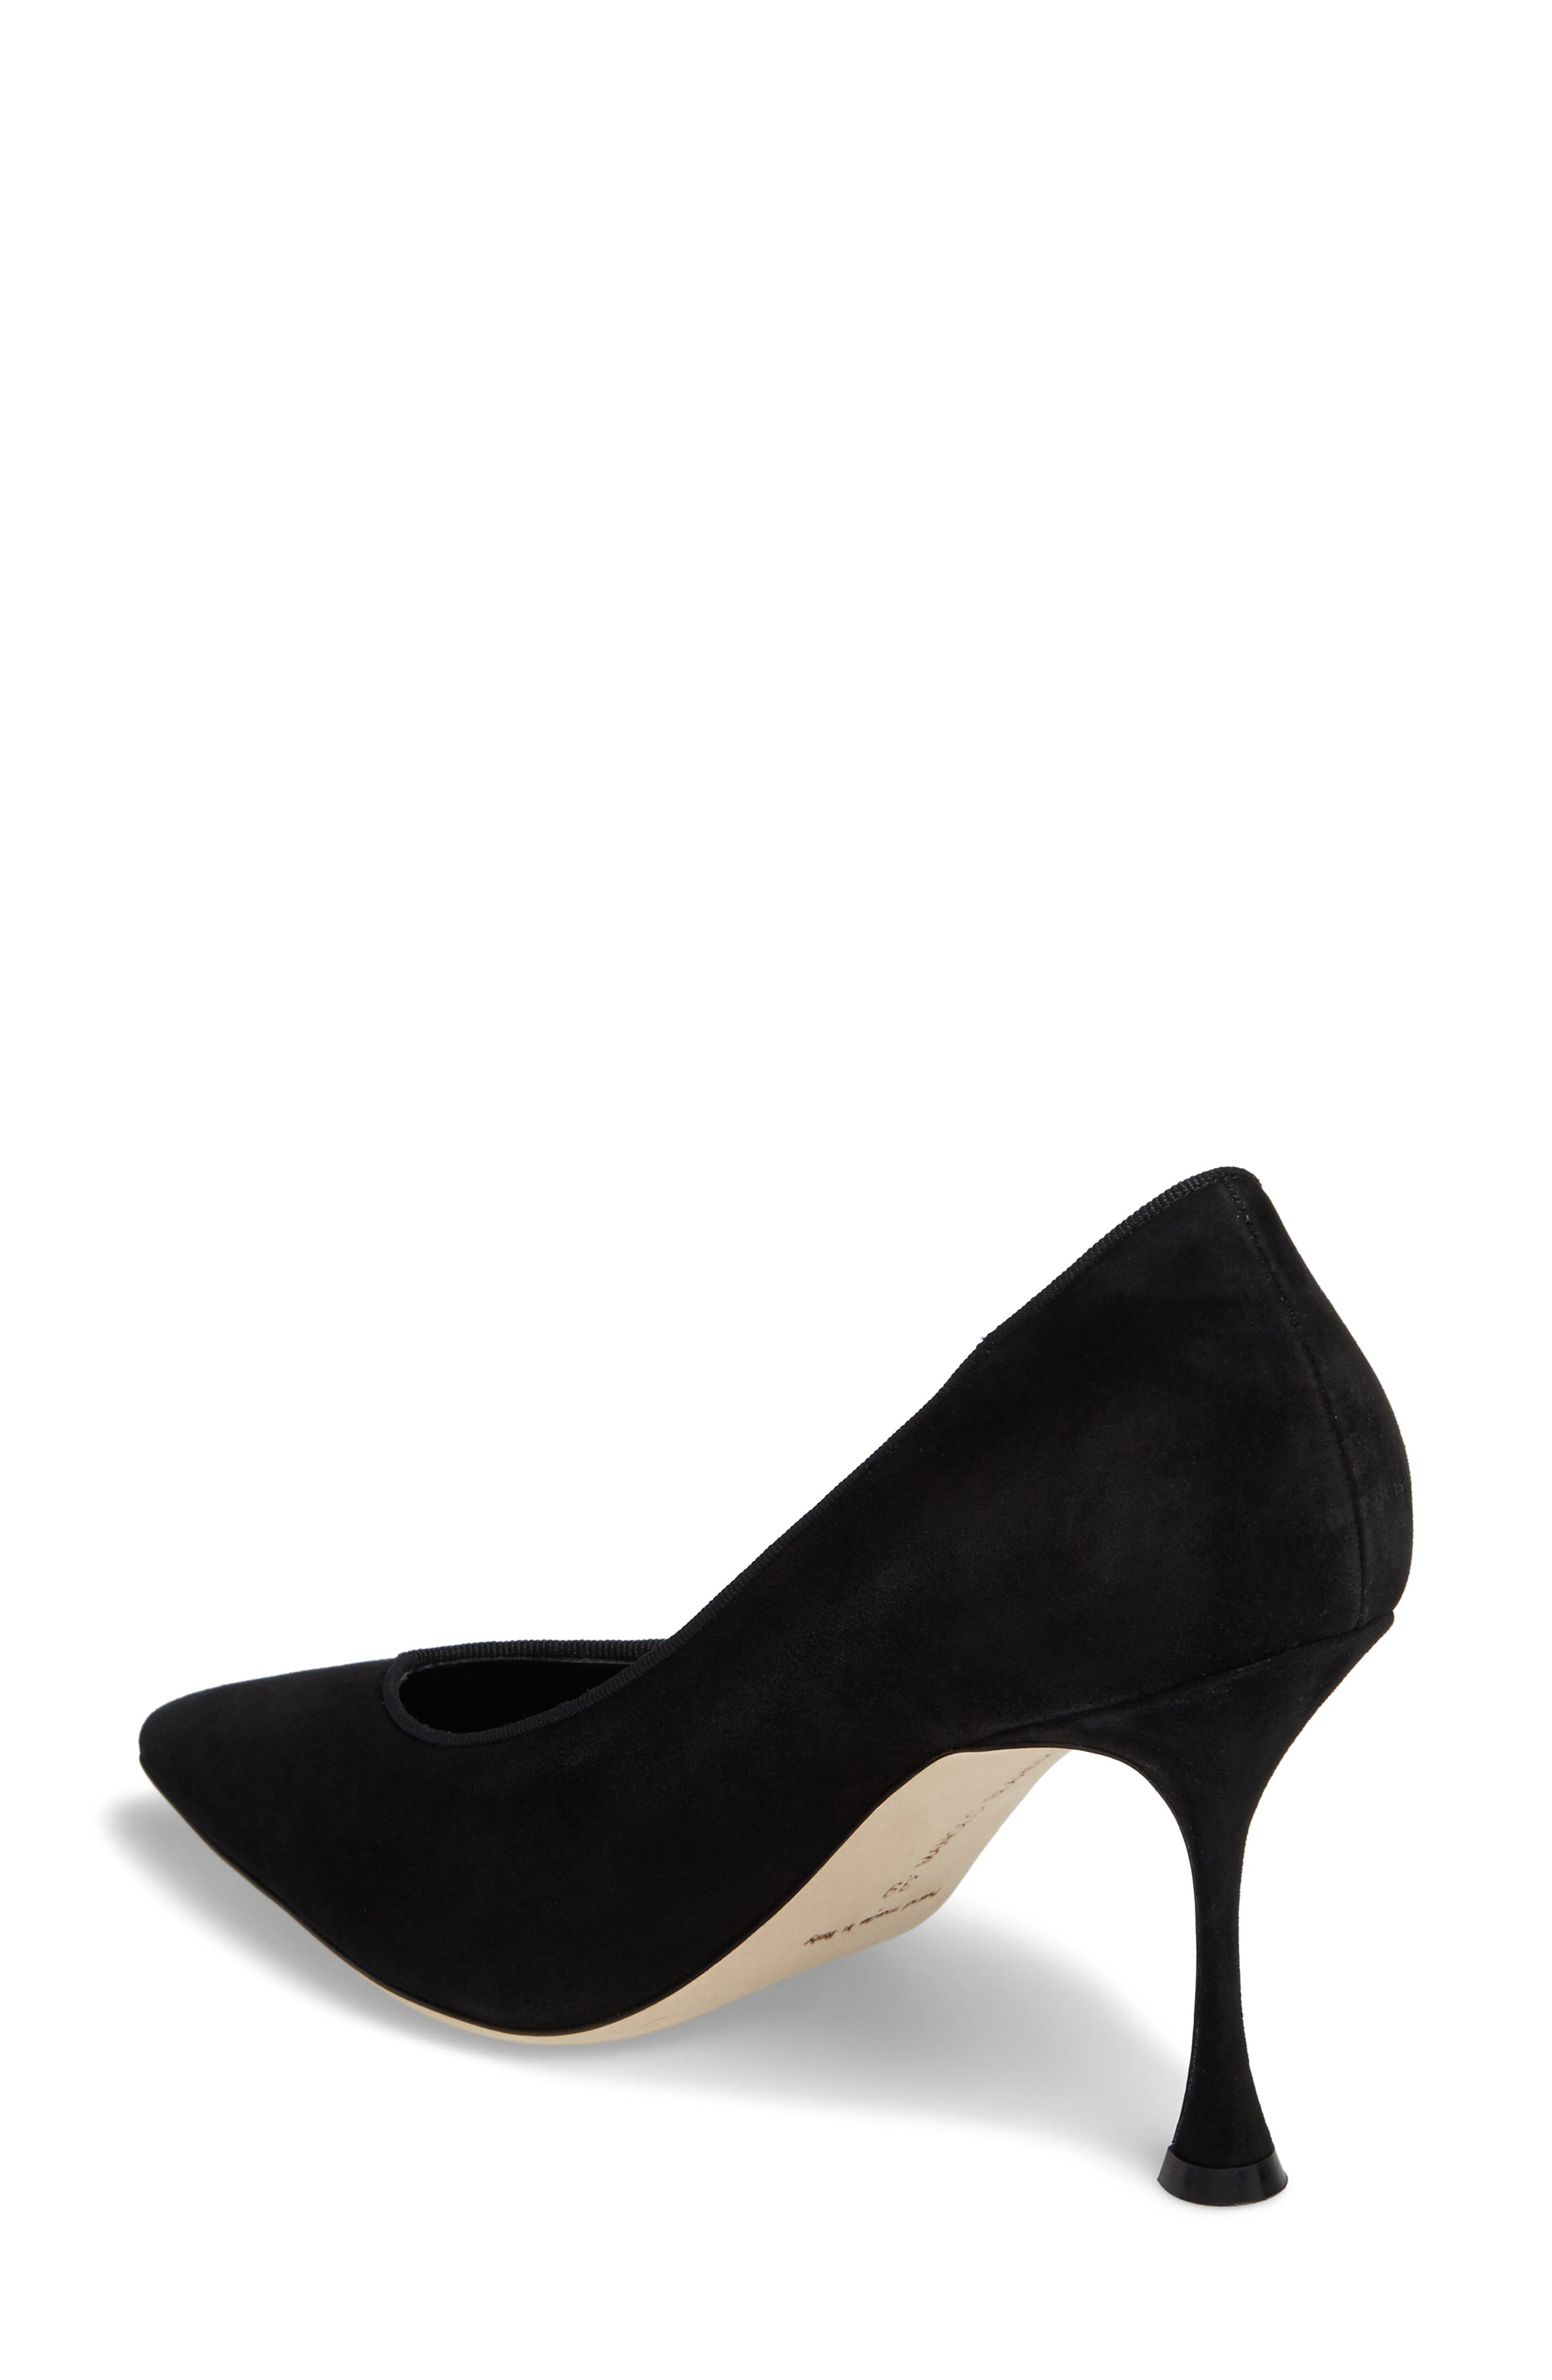 Urgenze Pointy Toe Pump,                             Alternate thumbnail 2, color,                             Black Suede